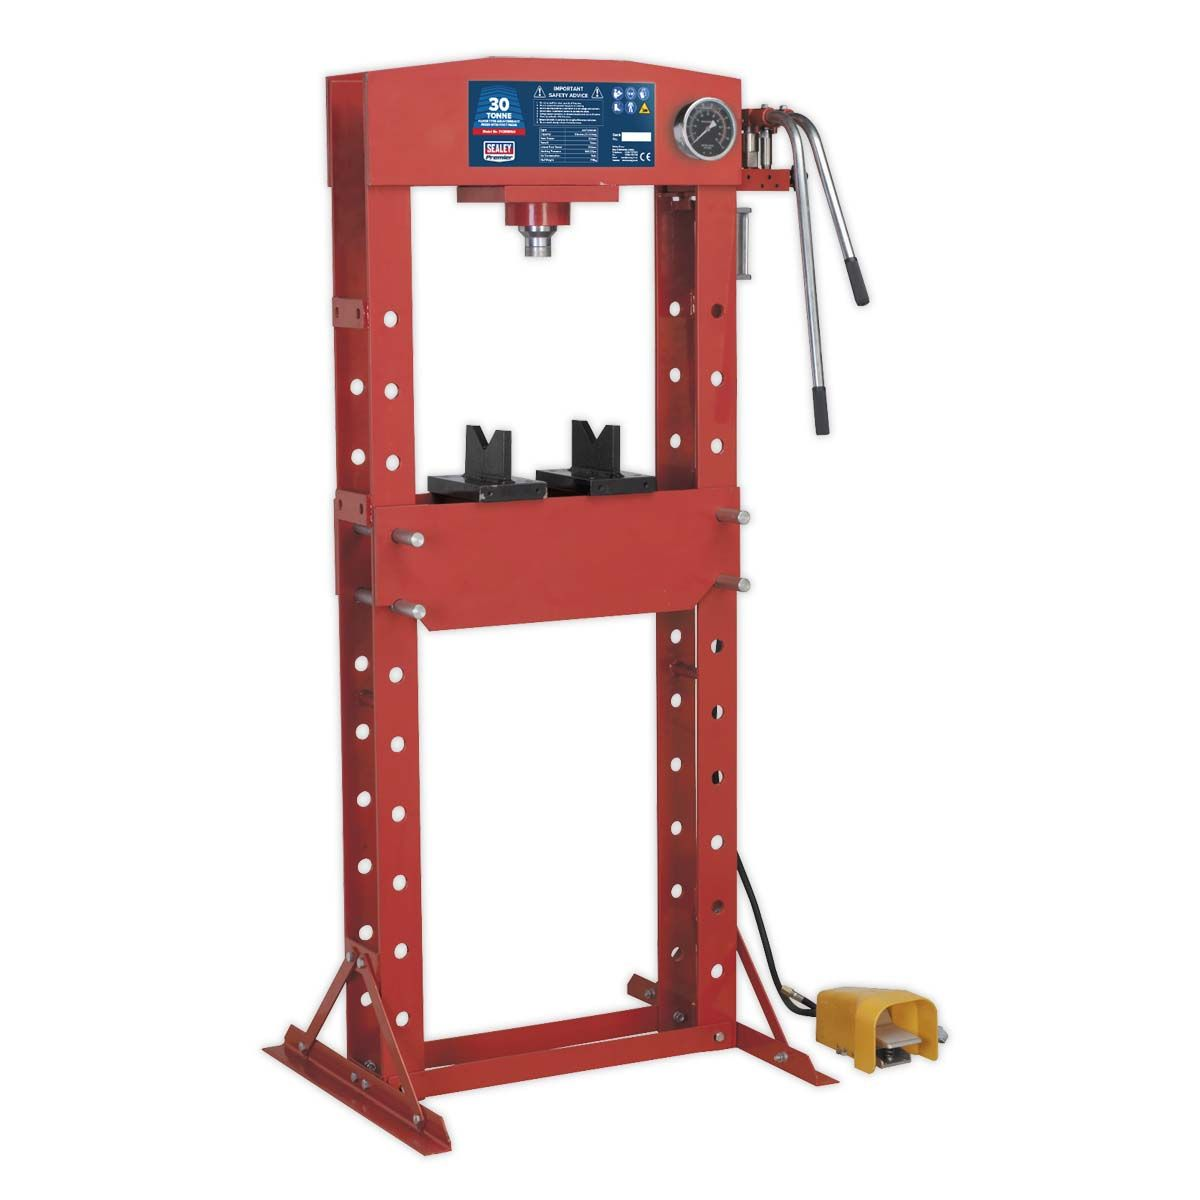 Sealey Air/Hydraulic Press 30tonne Floor Type with Foot Pedal